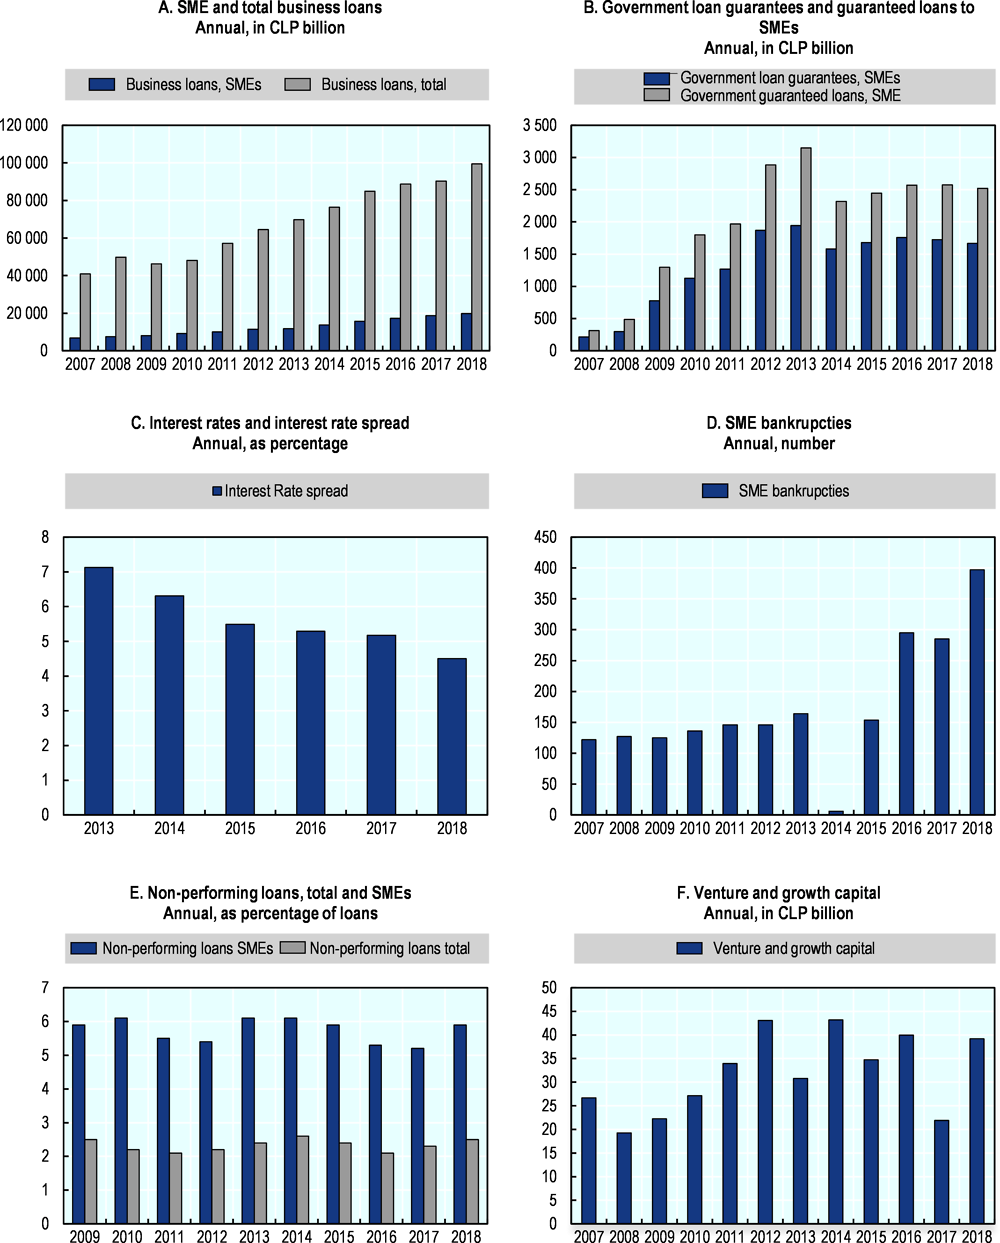 Figure 9.5. Trends in SME and entrepreneurship finance in Chile